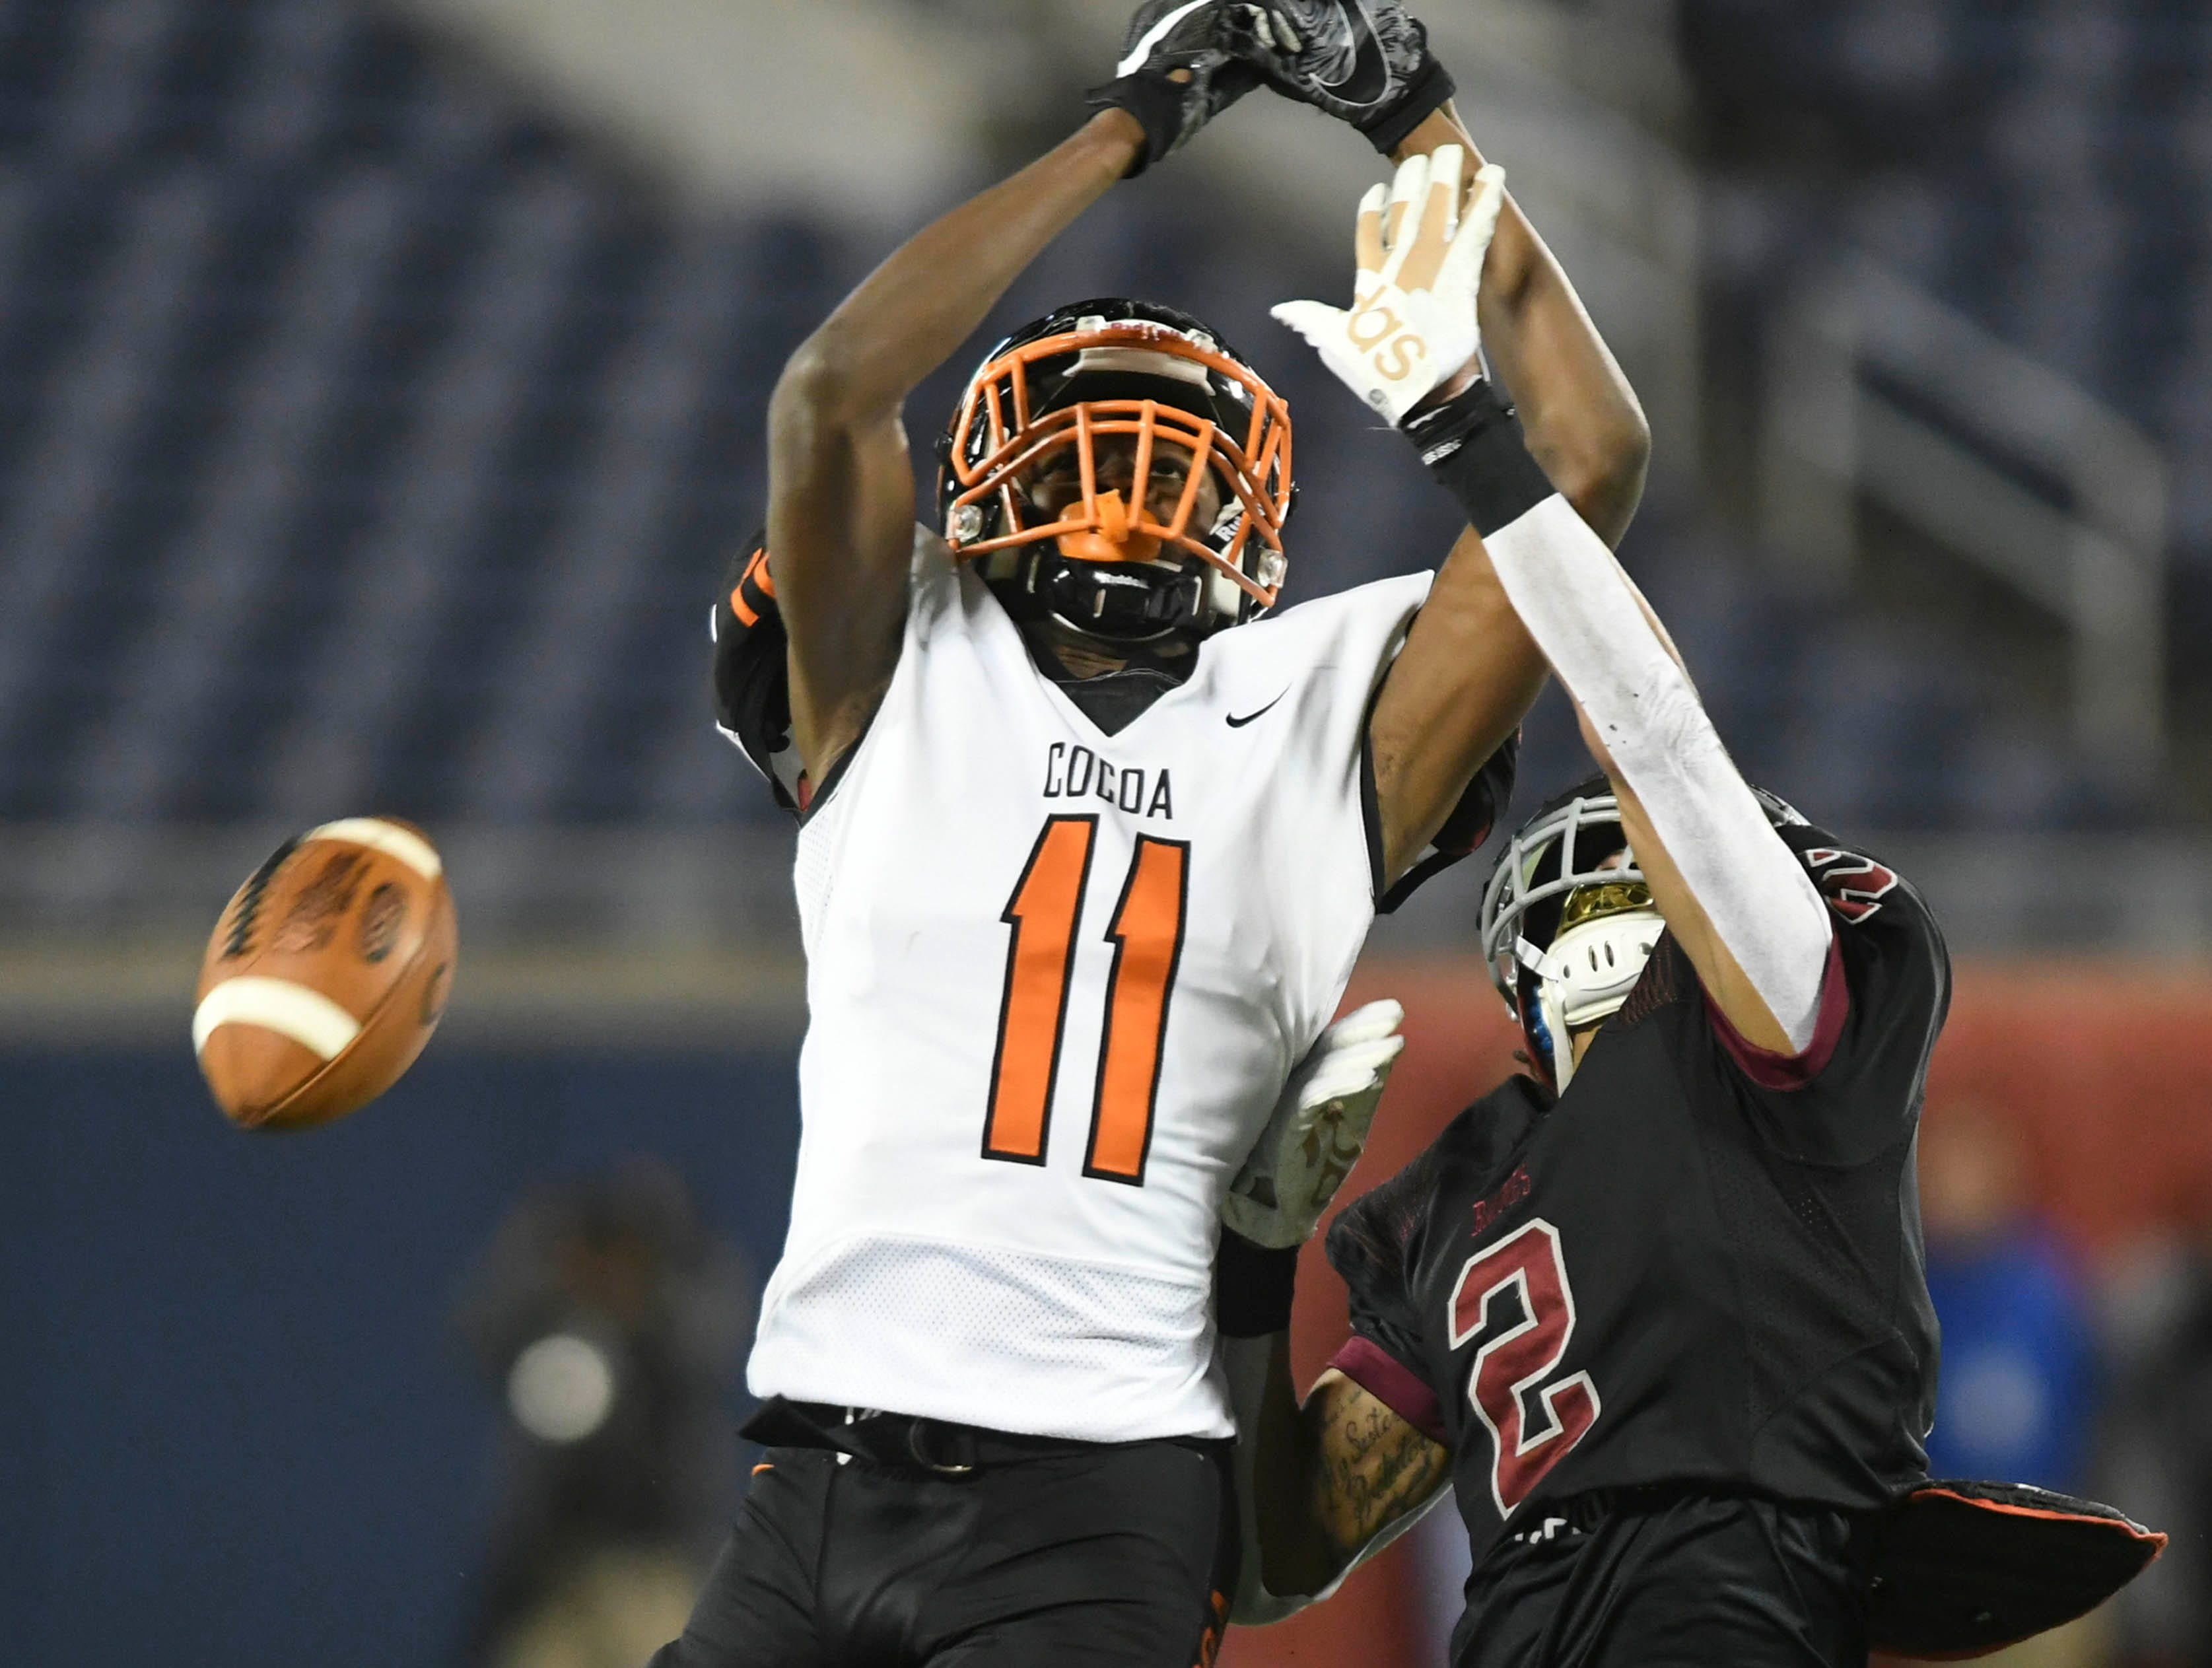 Treyvon Hobbs of Raines breaks up a pass intended for Jamari Williams of Cocoa during Thursday's Class 4A football state championship.